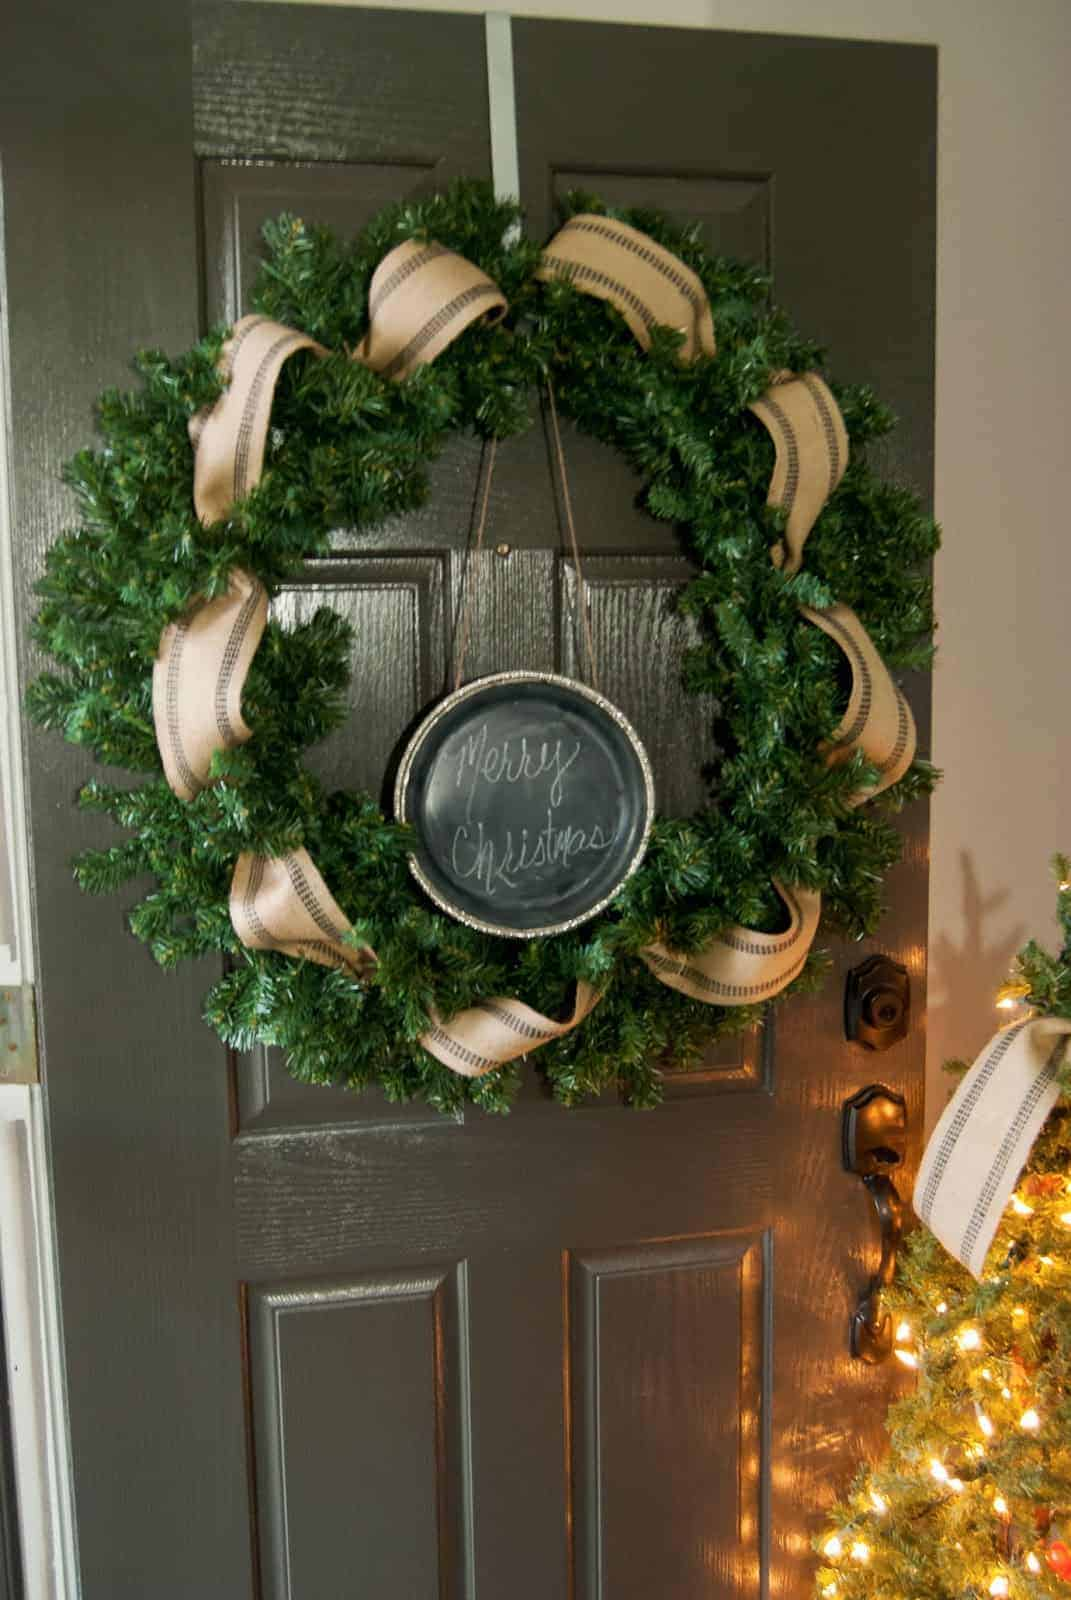 If you are itching for a holiday craft, look no further! I've rounded up 14 amazing DIY holiday wreaths in one place for you!